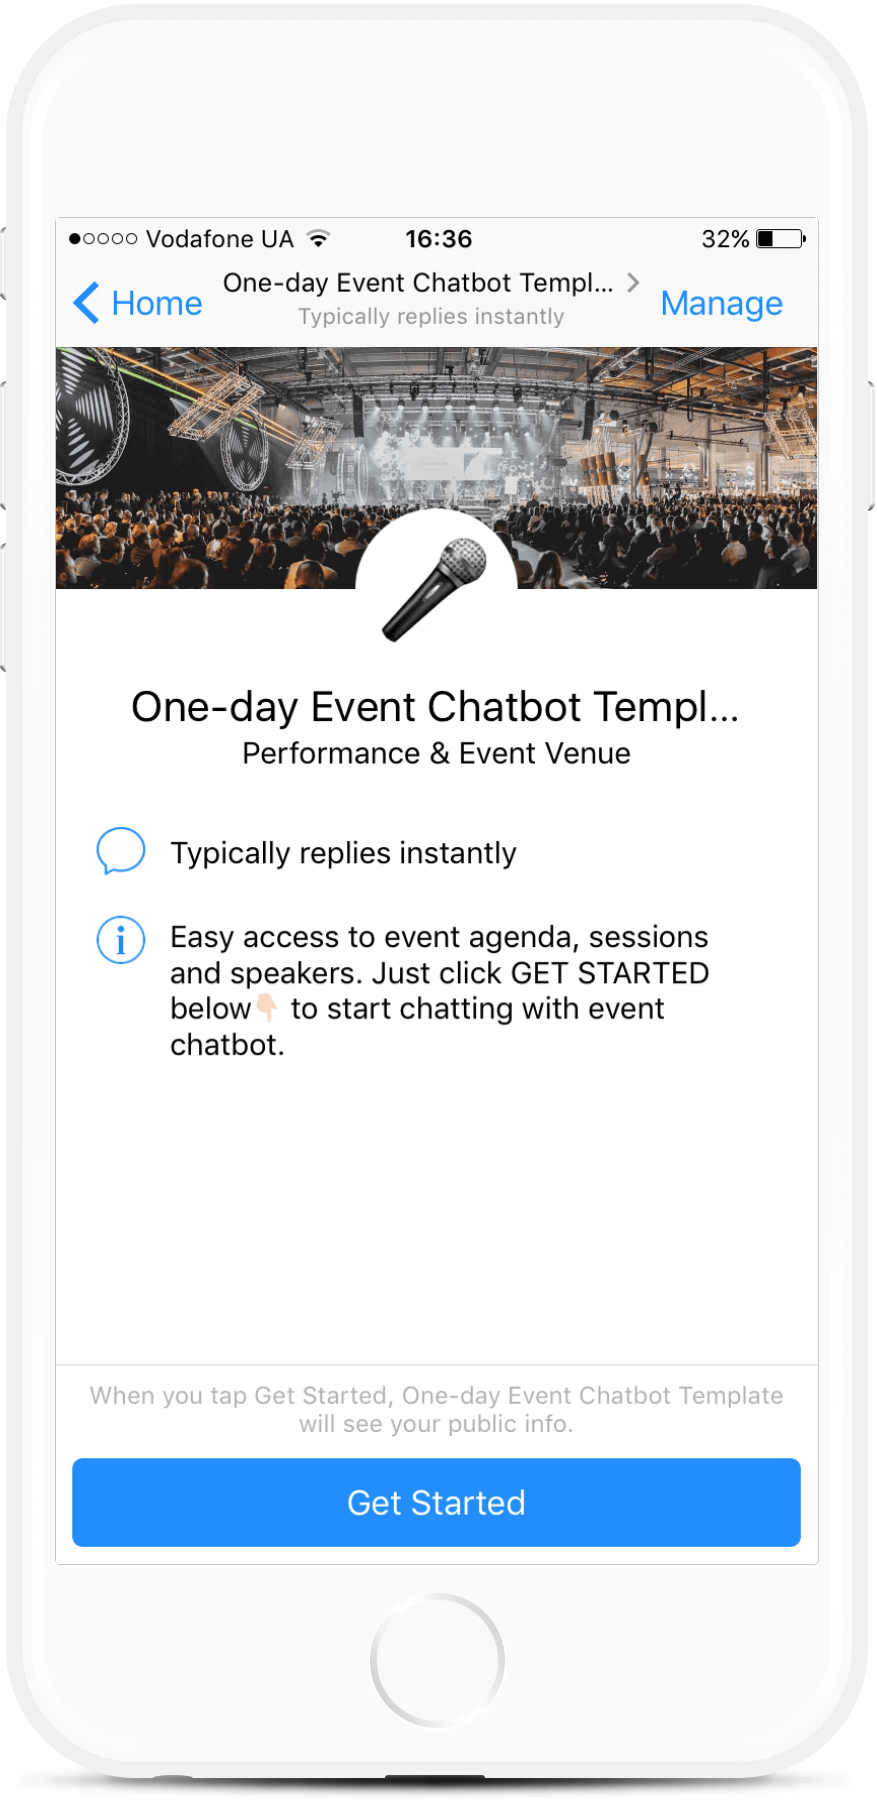 One-day Event Chatbot Template bot screenshot